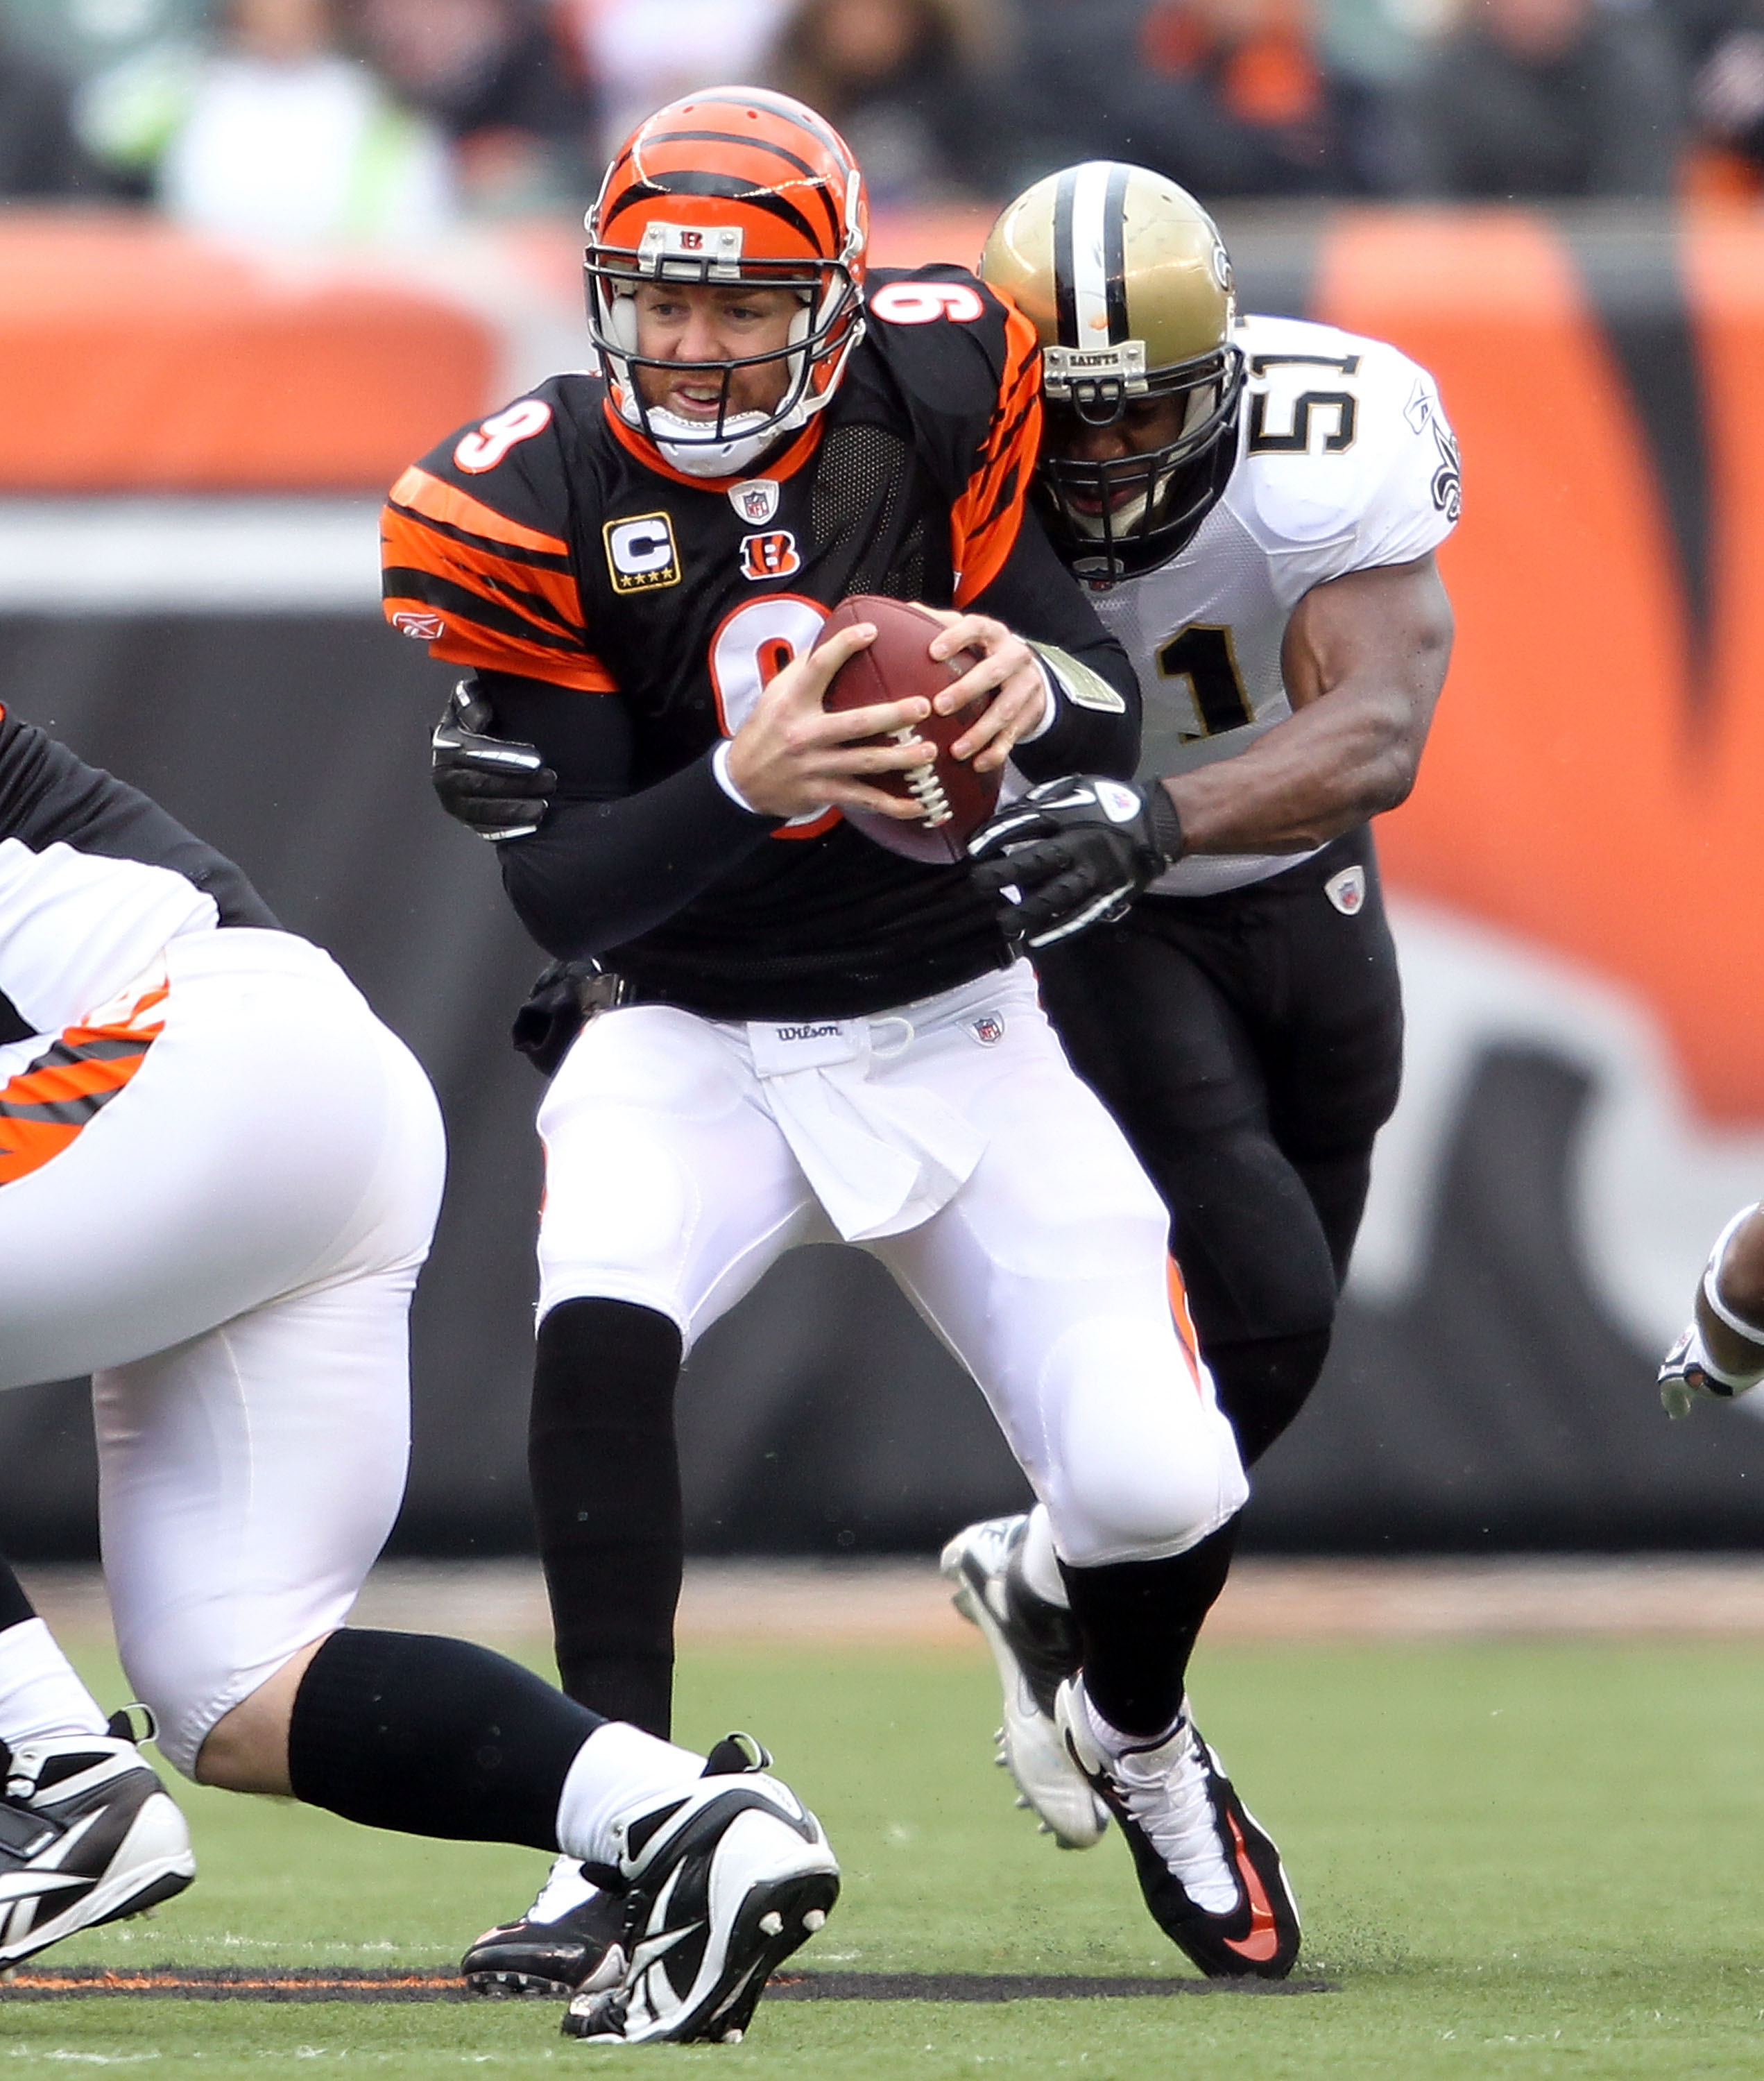 CINCINNATI, OH - DECEMBER 05:  Jonathan Vilma #51 of the New Orleans Saints sacks Carson Palmer #9 of the Cincinnati Bengals during the NFL game at Paul Brown Stadium on December 5, 2010 in Cincinnati, Ohio.  The Saints won 34-30.  (Photo by Andy Lyons/Ge